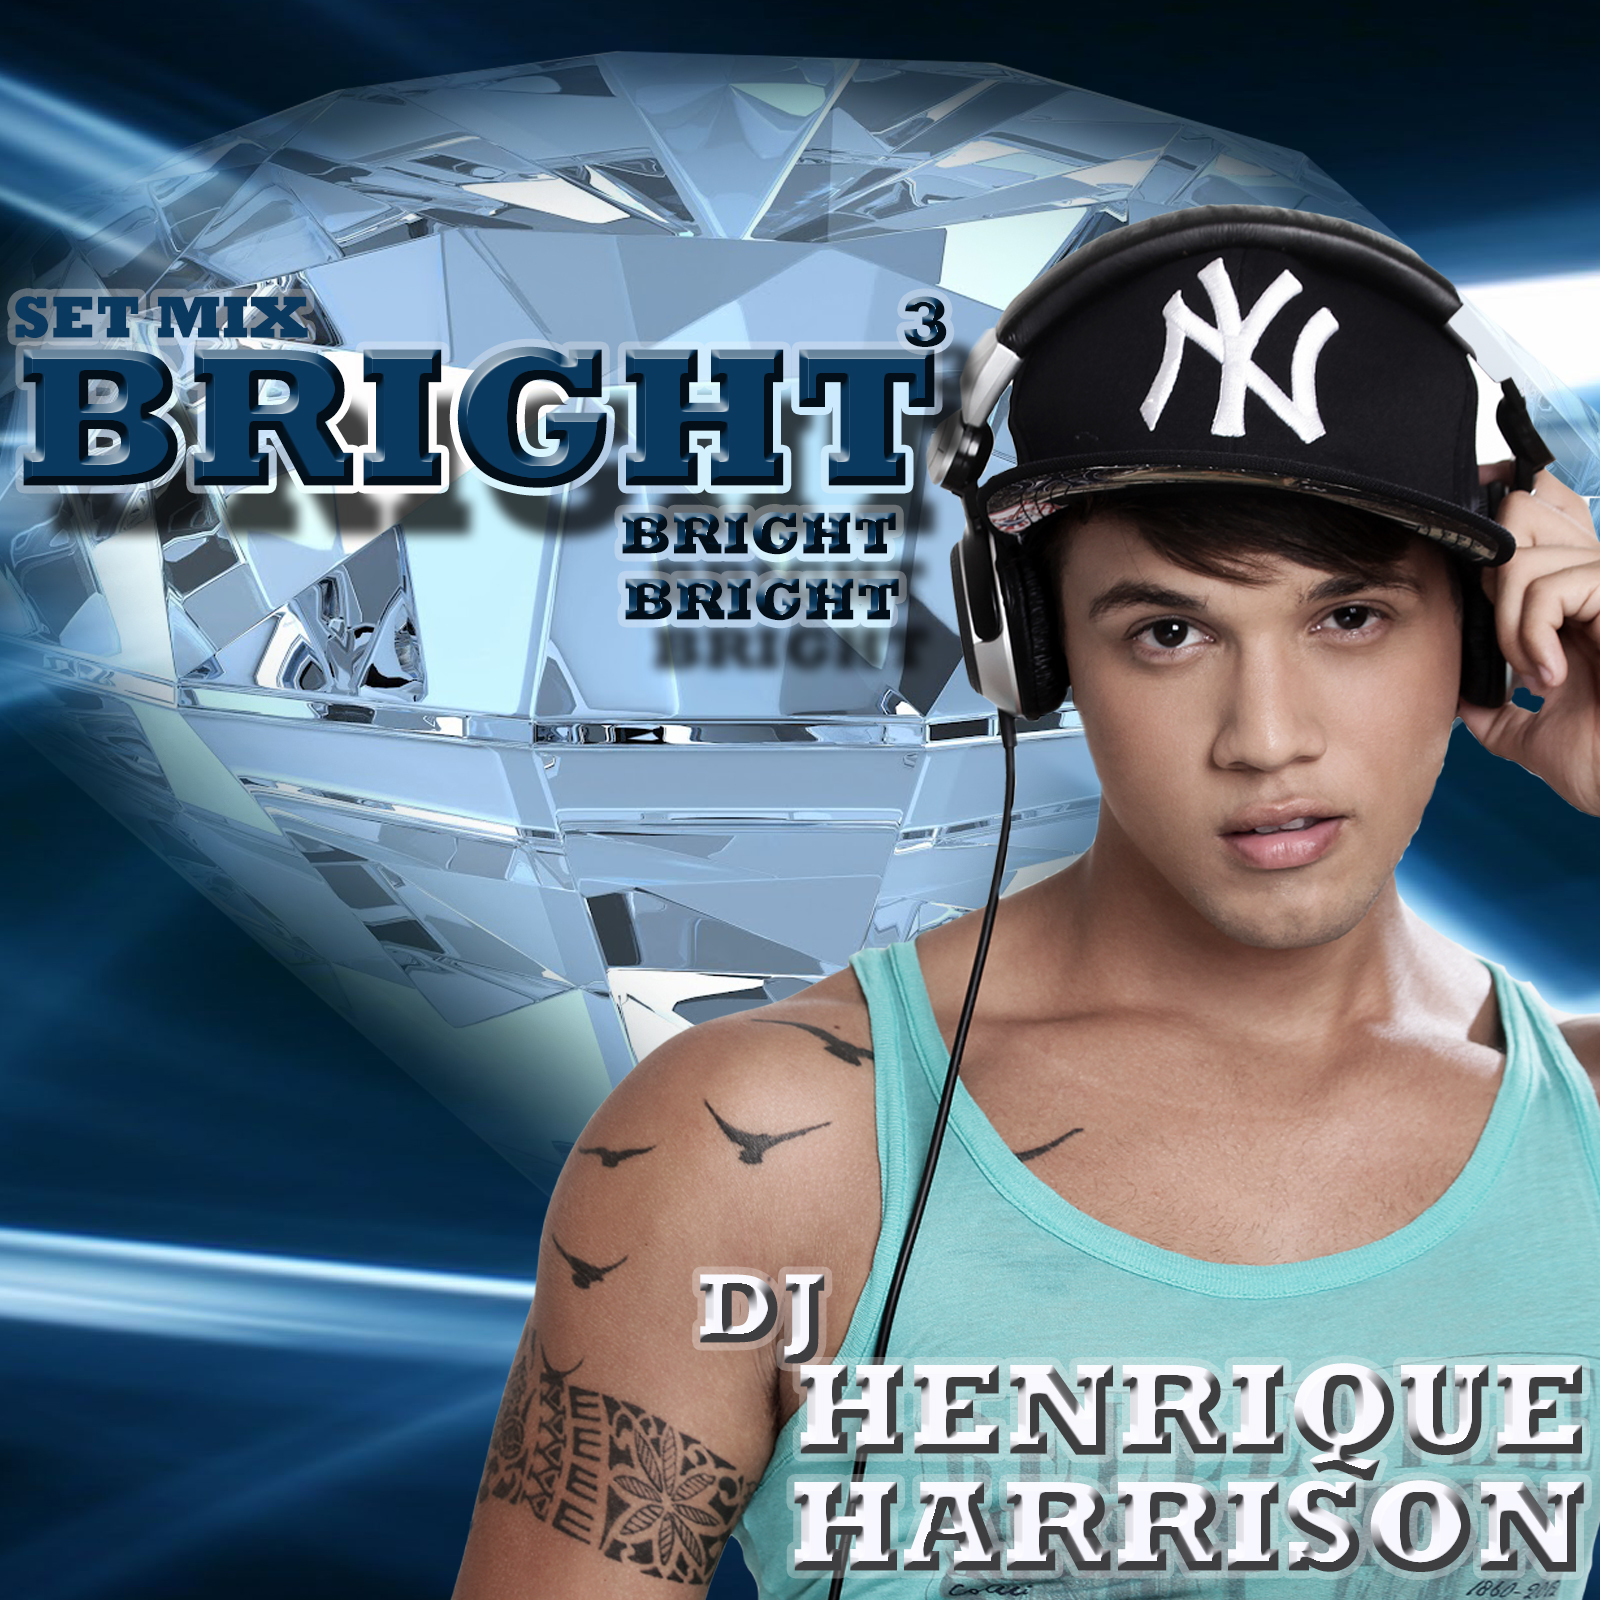 DJ Henrique Harrison - BRIGHT BRIGHT BRIGHT (Set Mix)